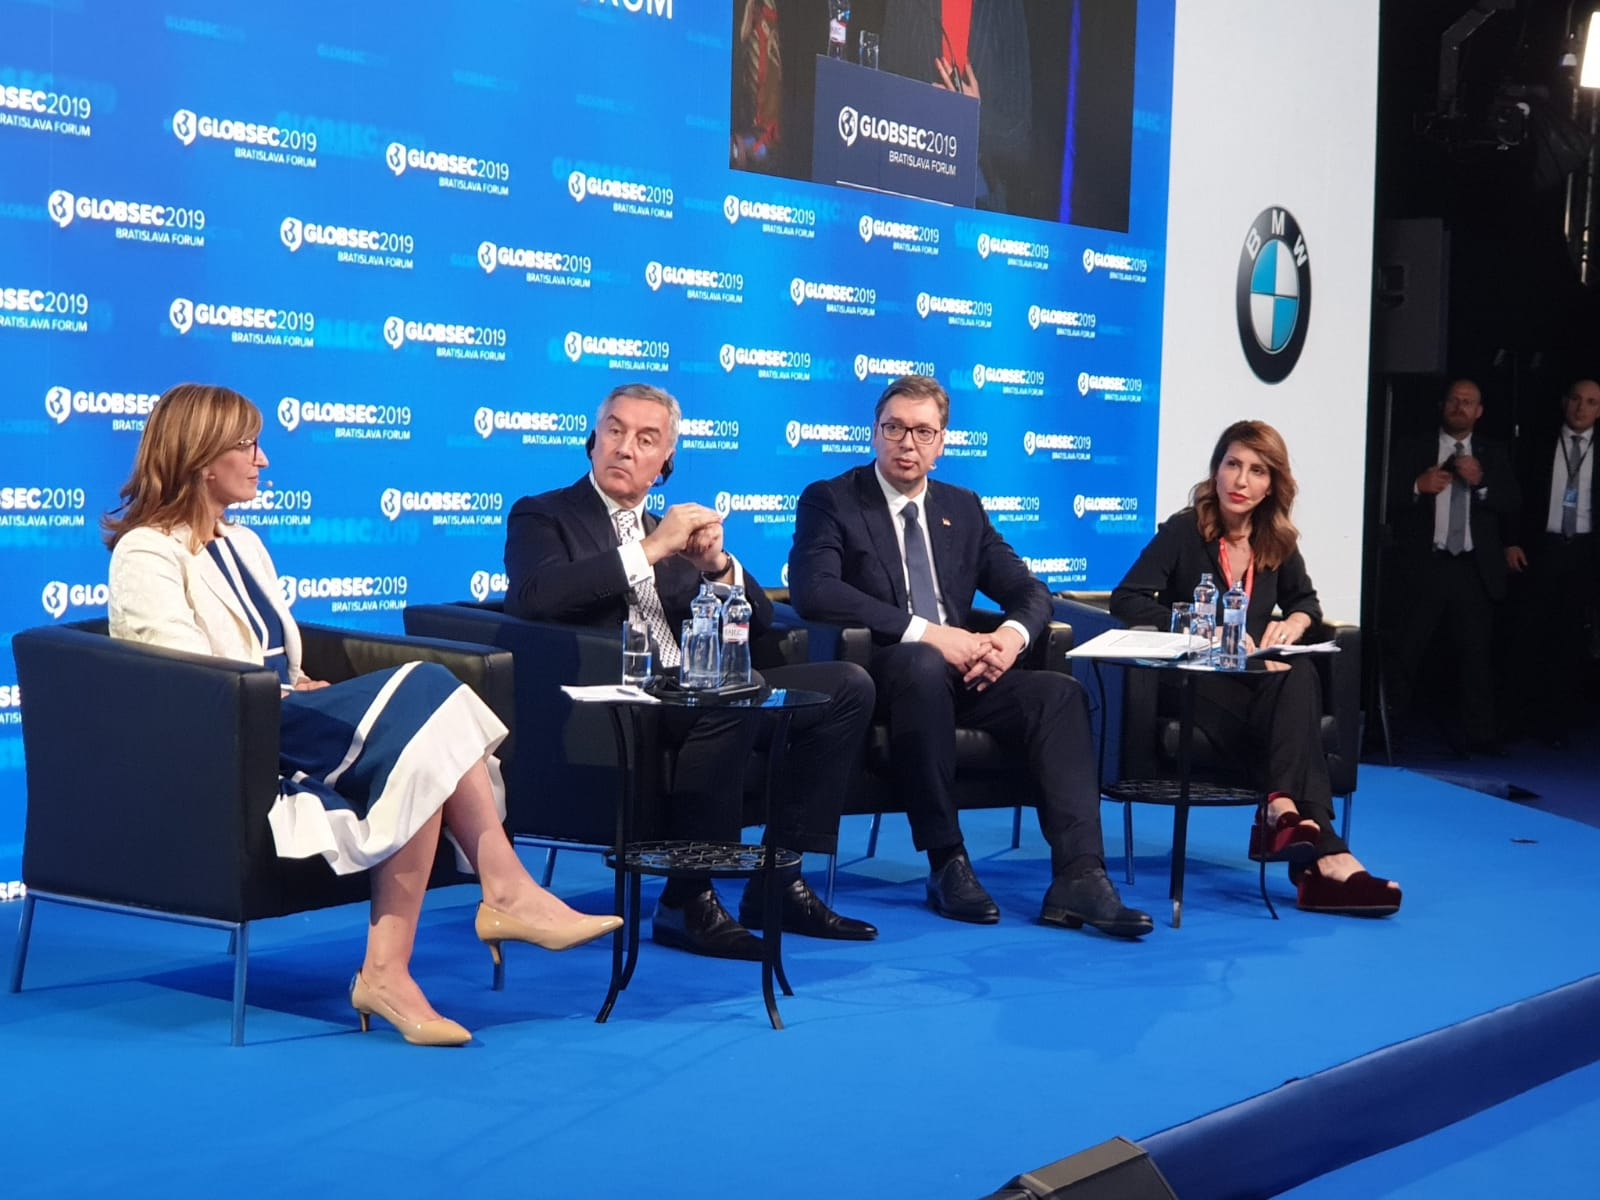 "RCC Secretary General, Majlinda Bregu at the GLOBSEC 2019 Forum speaking at the panel 'Western Balkans: drifting away from Europe?"", together with presidents of  Montenegro and Serbia, Milo Djukanovic and Aleksandar Vucic  and Bulgarian Minister of Foreign Affairs, Ekaterina Zaharieva, in Bratislava on 7 June 2019 (Photo: RCC/Ratka Babic)"